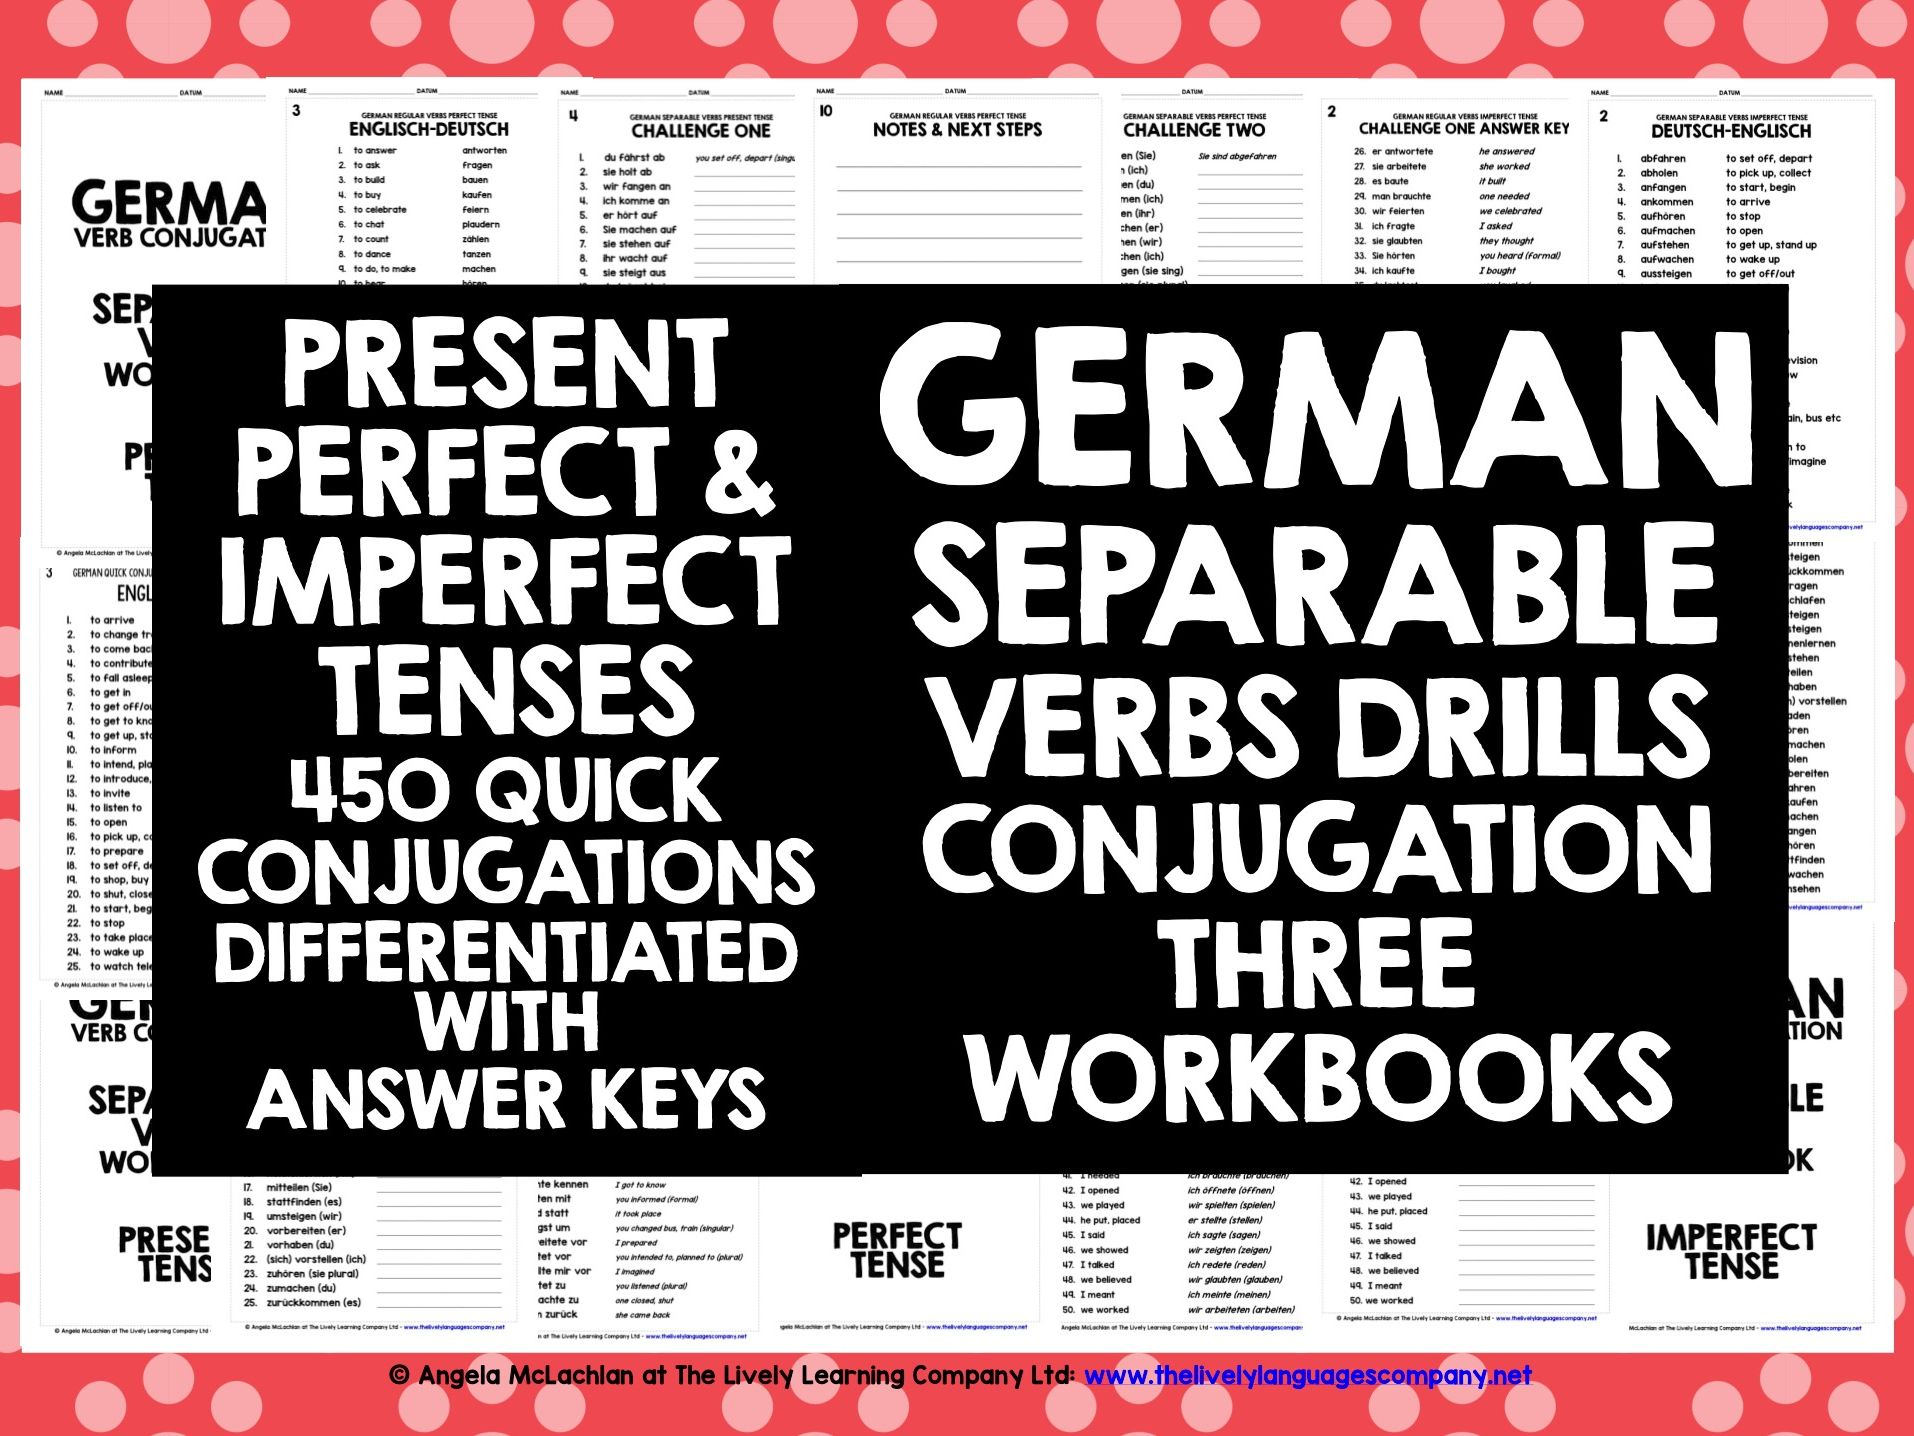 GERMAN SEPARABLE VERBS CONJUGATION PRESENT, PERFECT & IMPERFECT TENSES